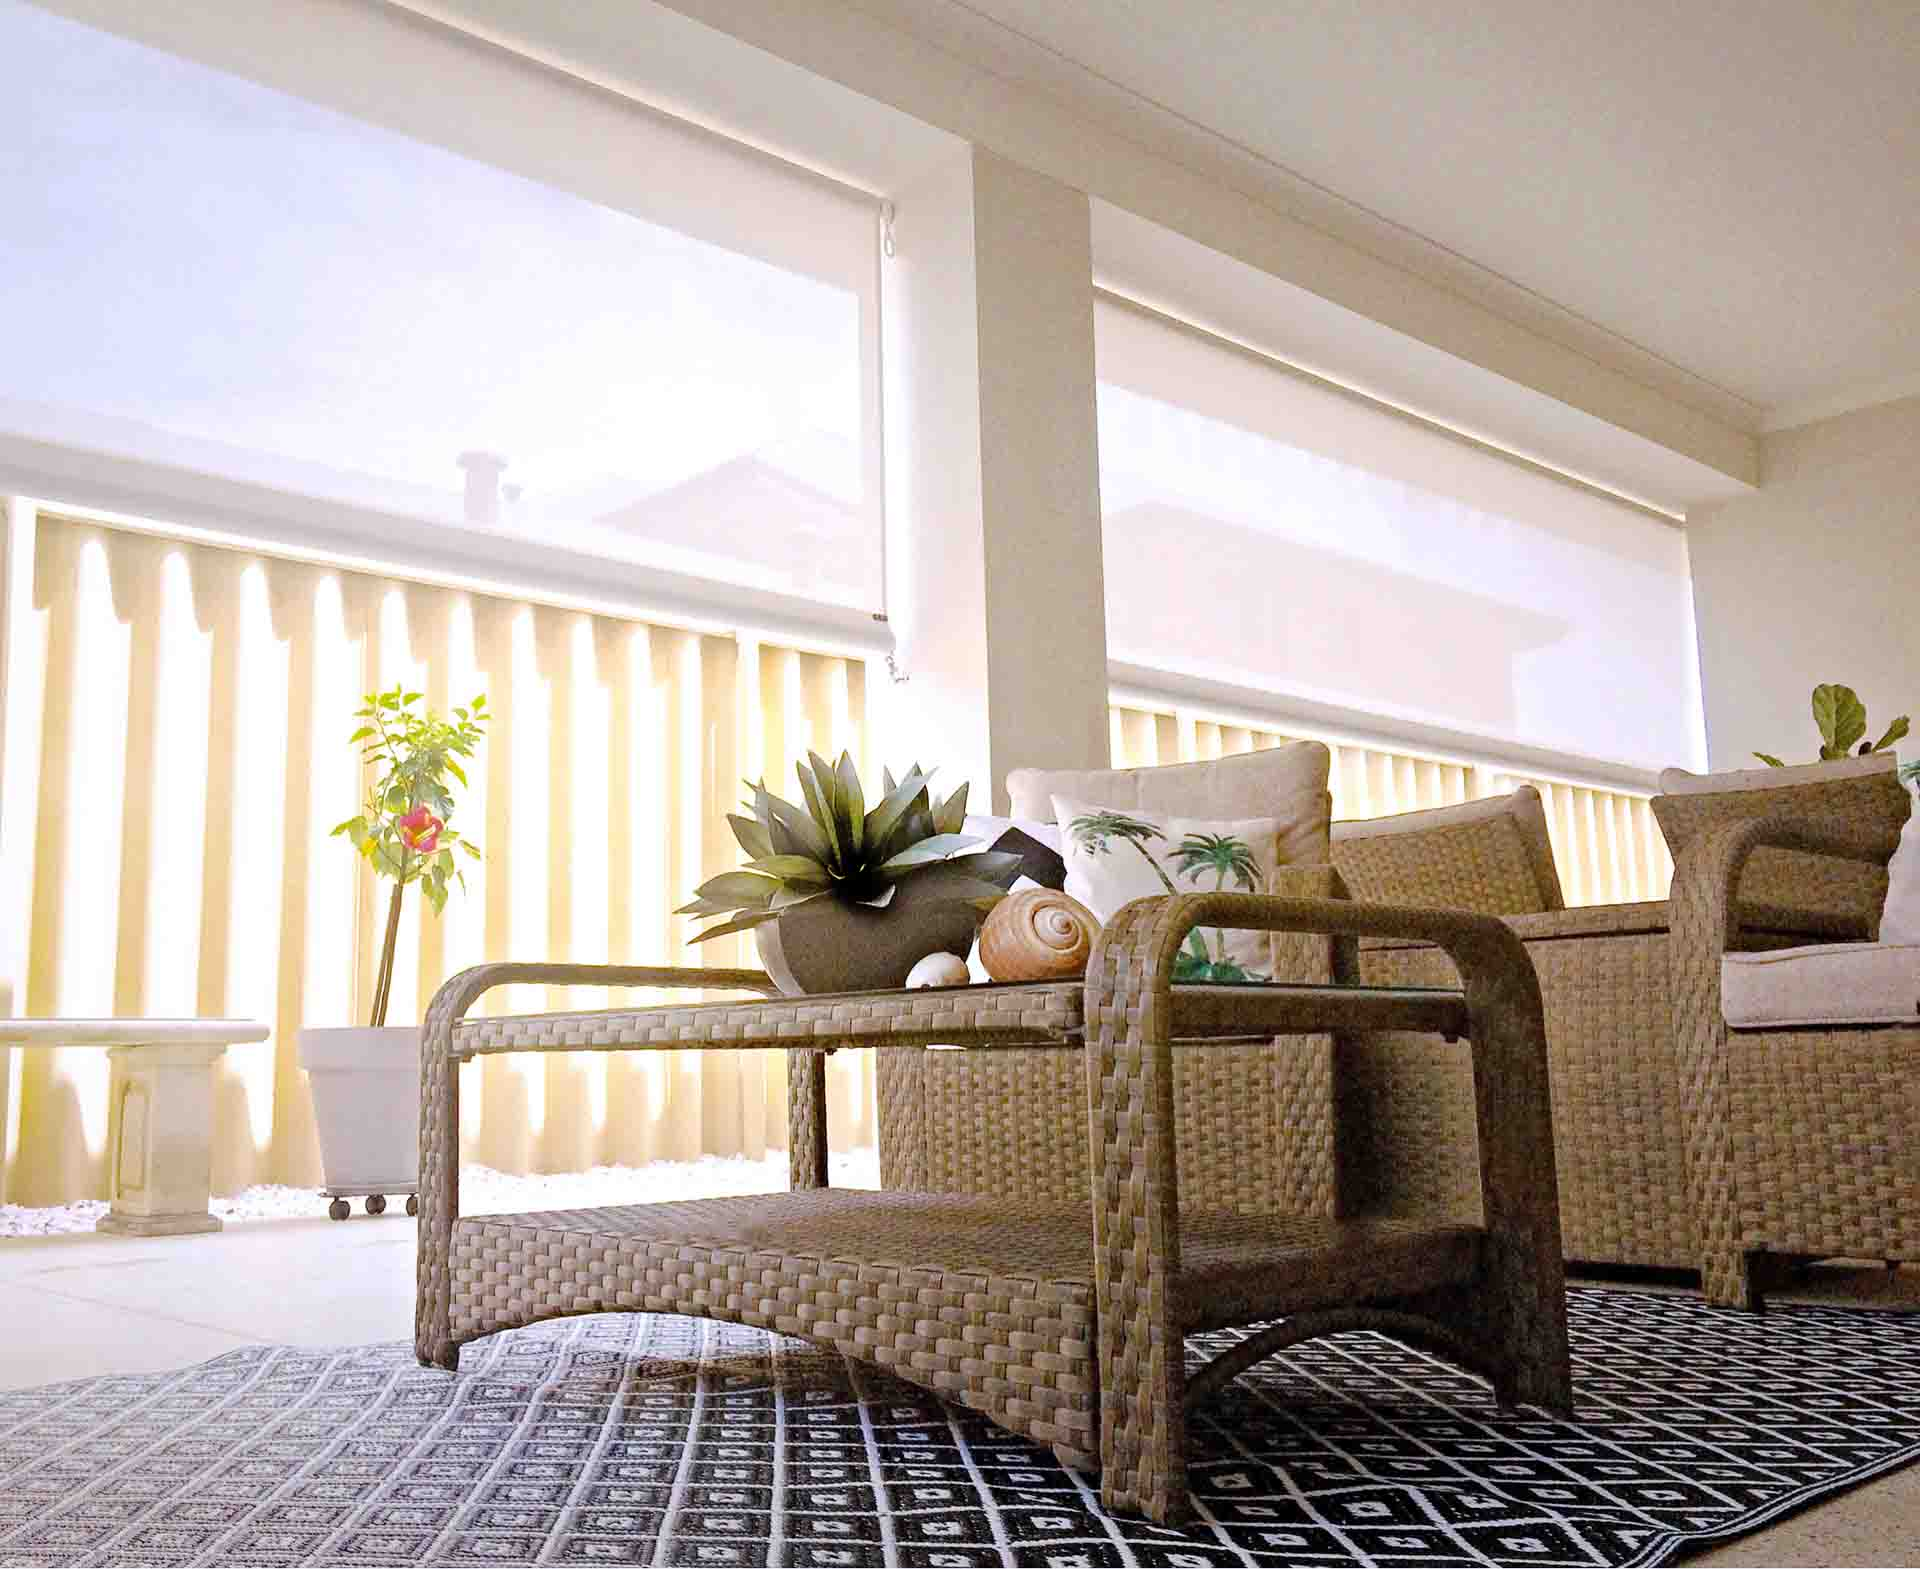 Outdoor Blinds Faqs Answered By The Experts